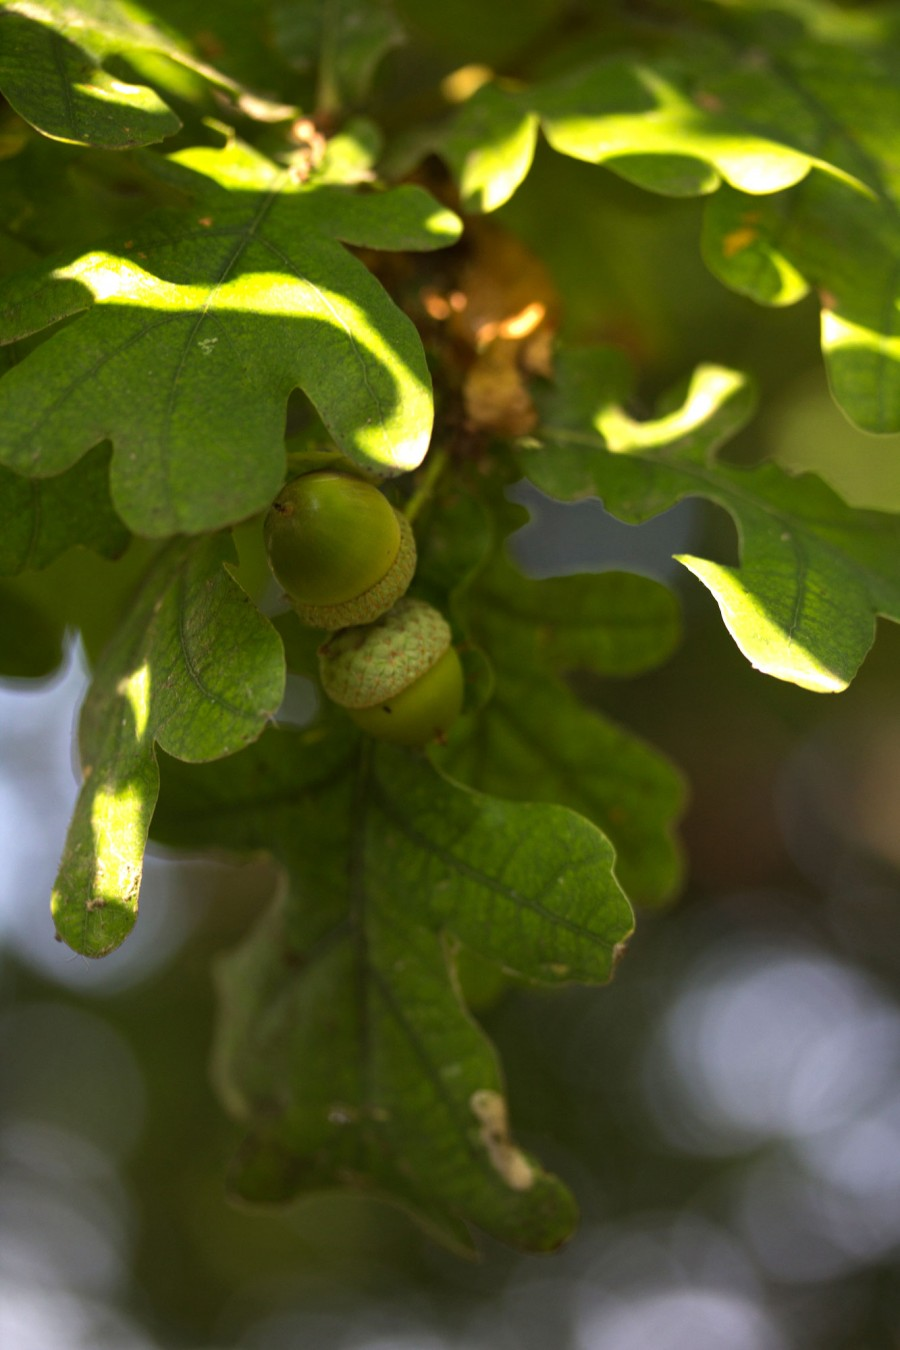 Acorns are forming on oak trees.